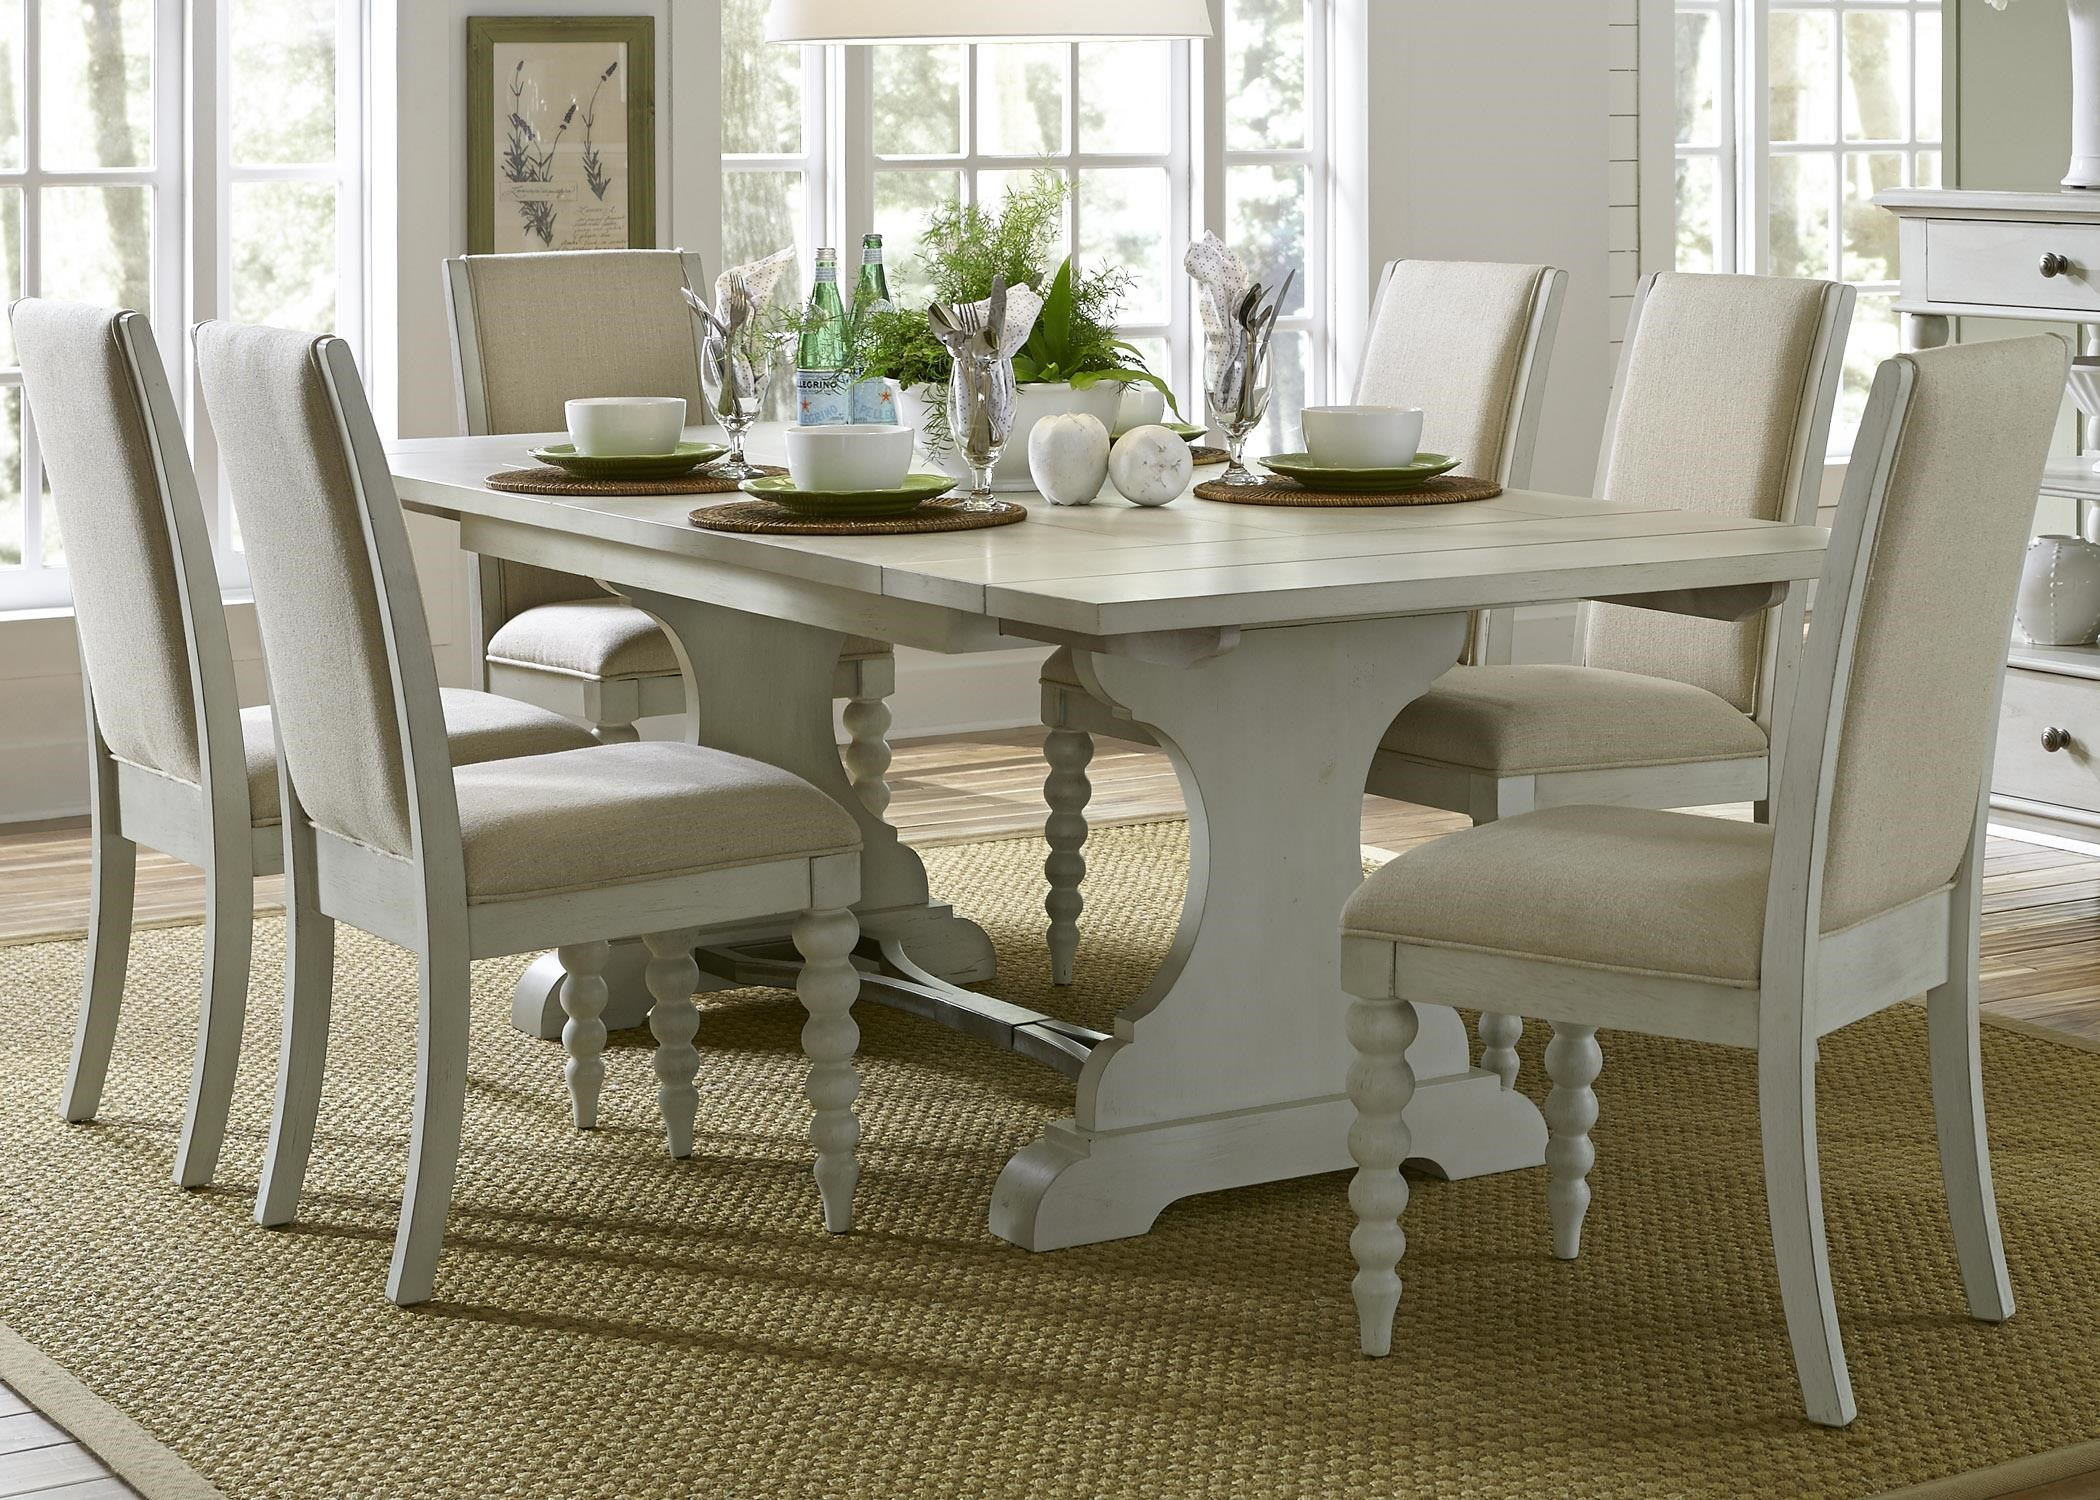 Liberty Furniture Harbor View Trestle Table with 6